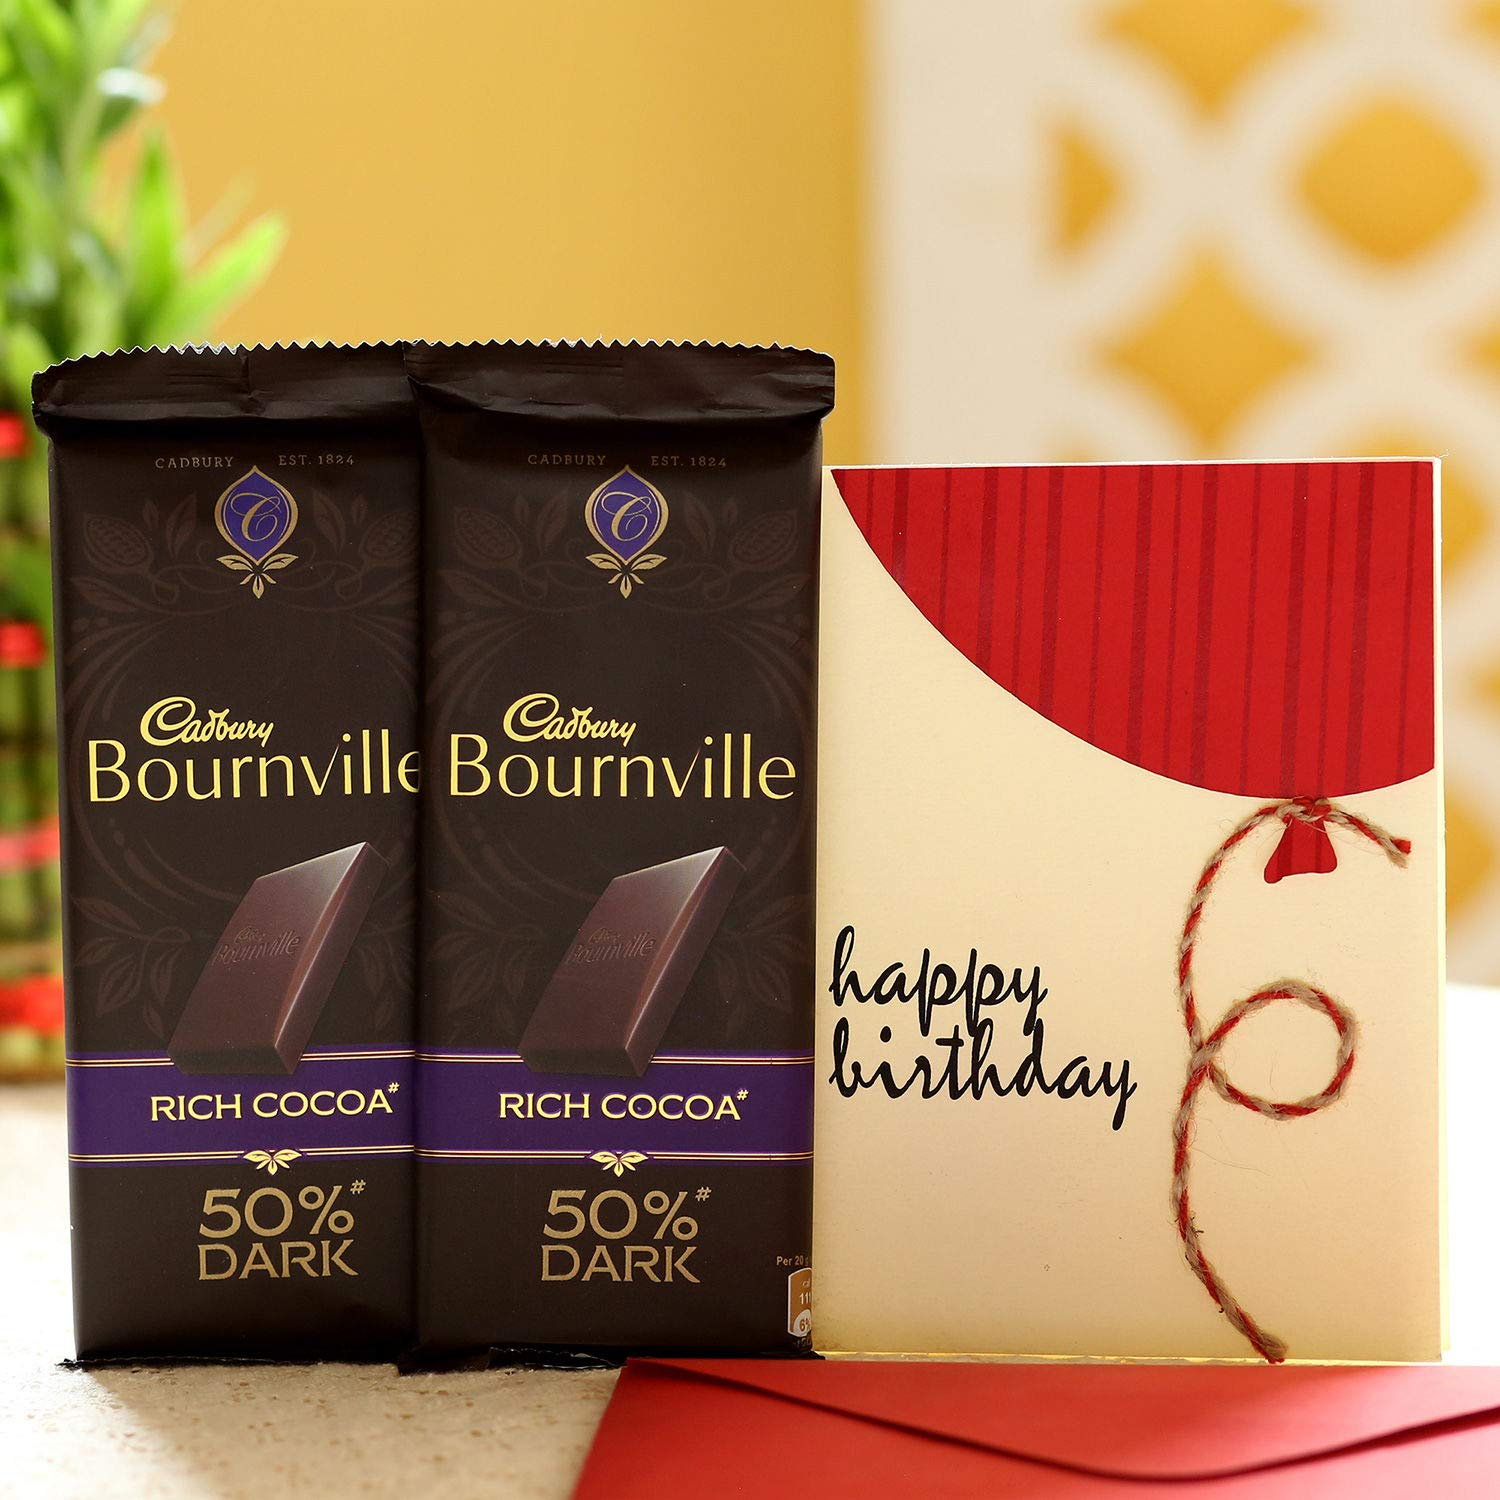 Ferns N Petals Birthday Wishes Bournville Chocolates Christmas Gift Happy New Year Gift Amazon In Grocery Gourmet Foods